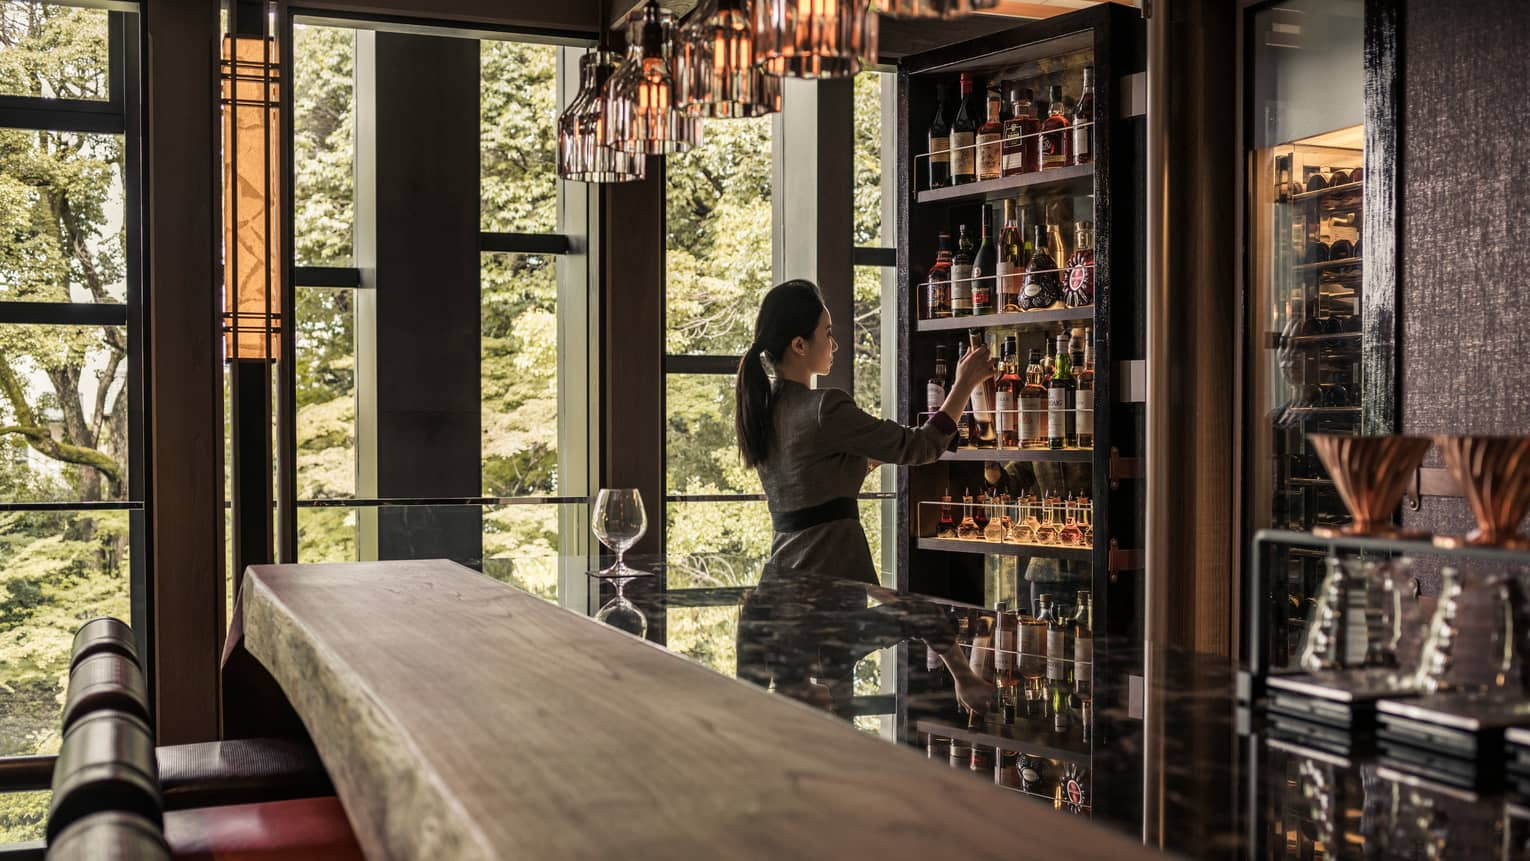 Lounge bartender retrieves bottle on wine from cellar behind long rustic wood bar